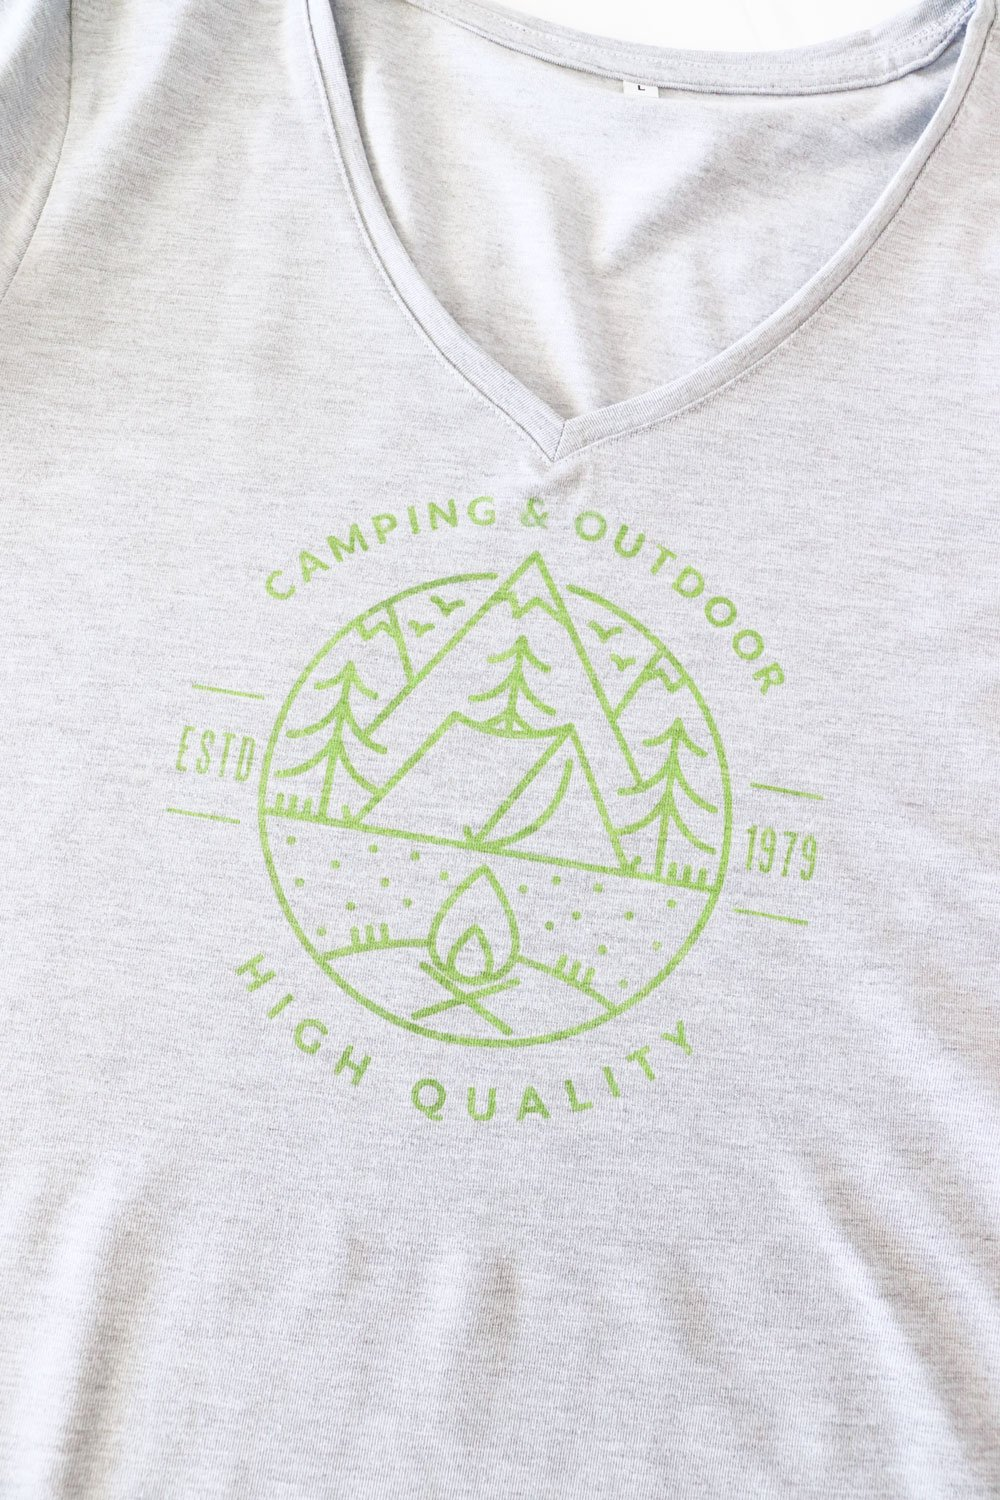 camping graphic tee